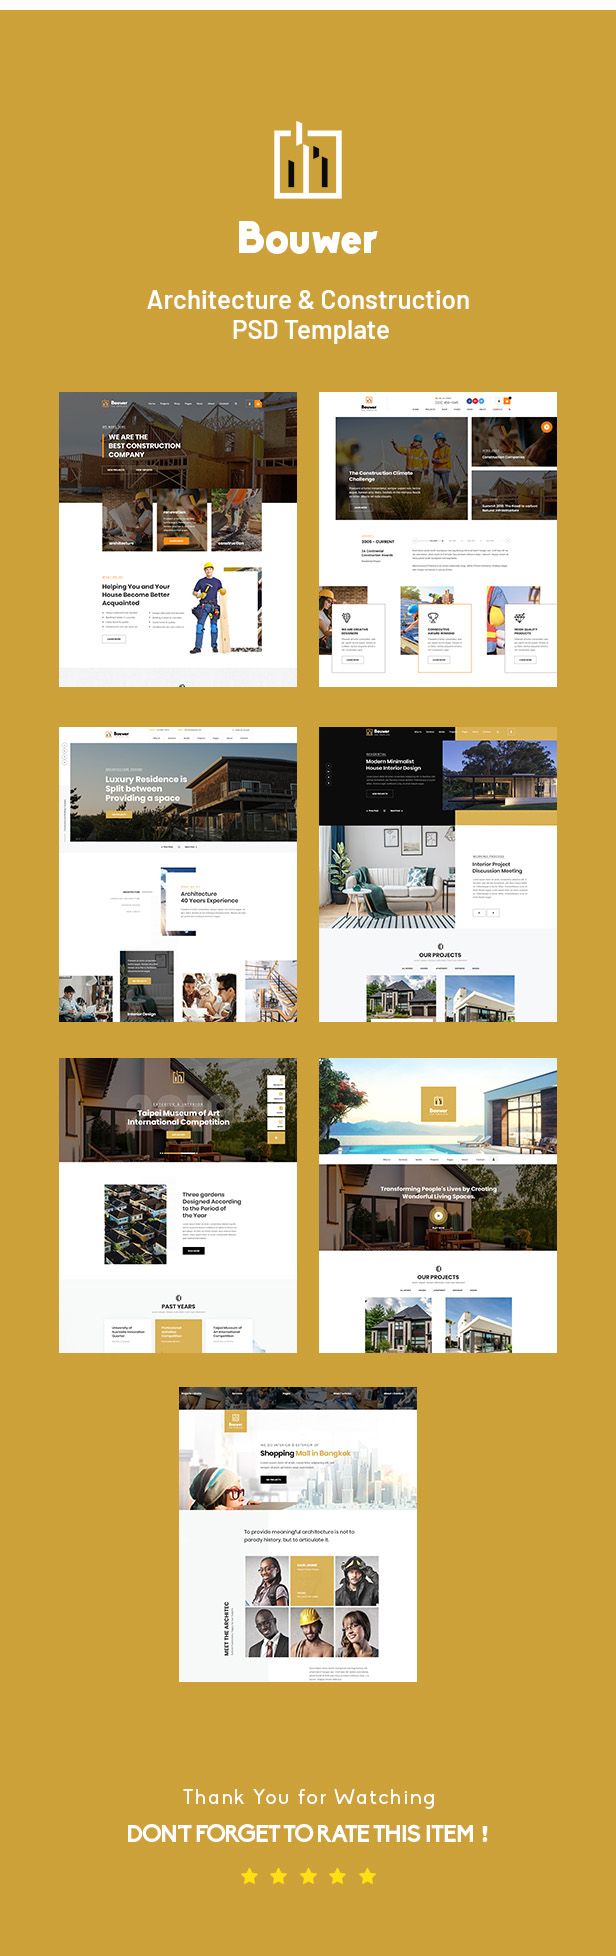 Bouwer - Architecture & Construction PSD Template - 1